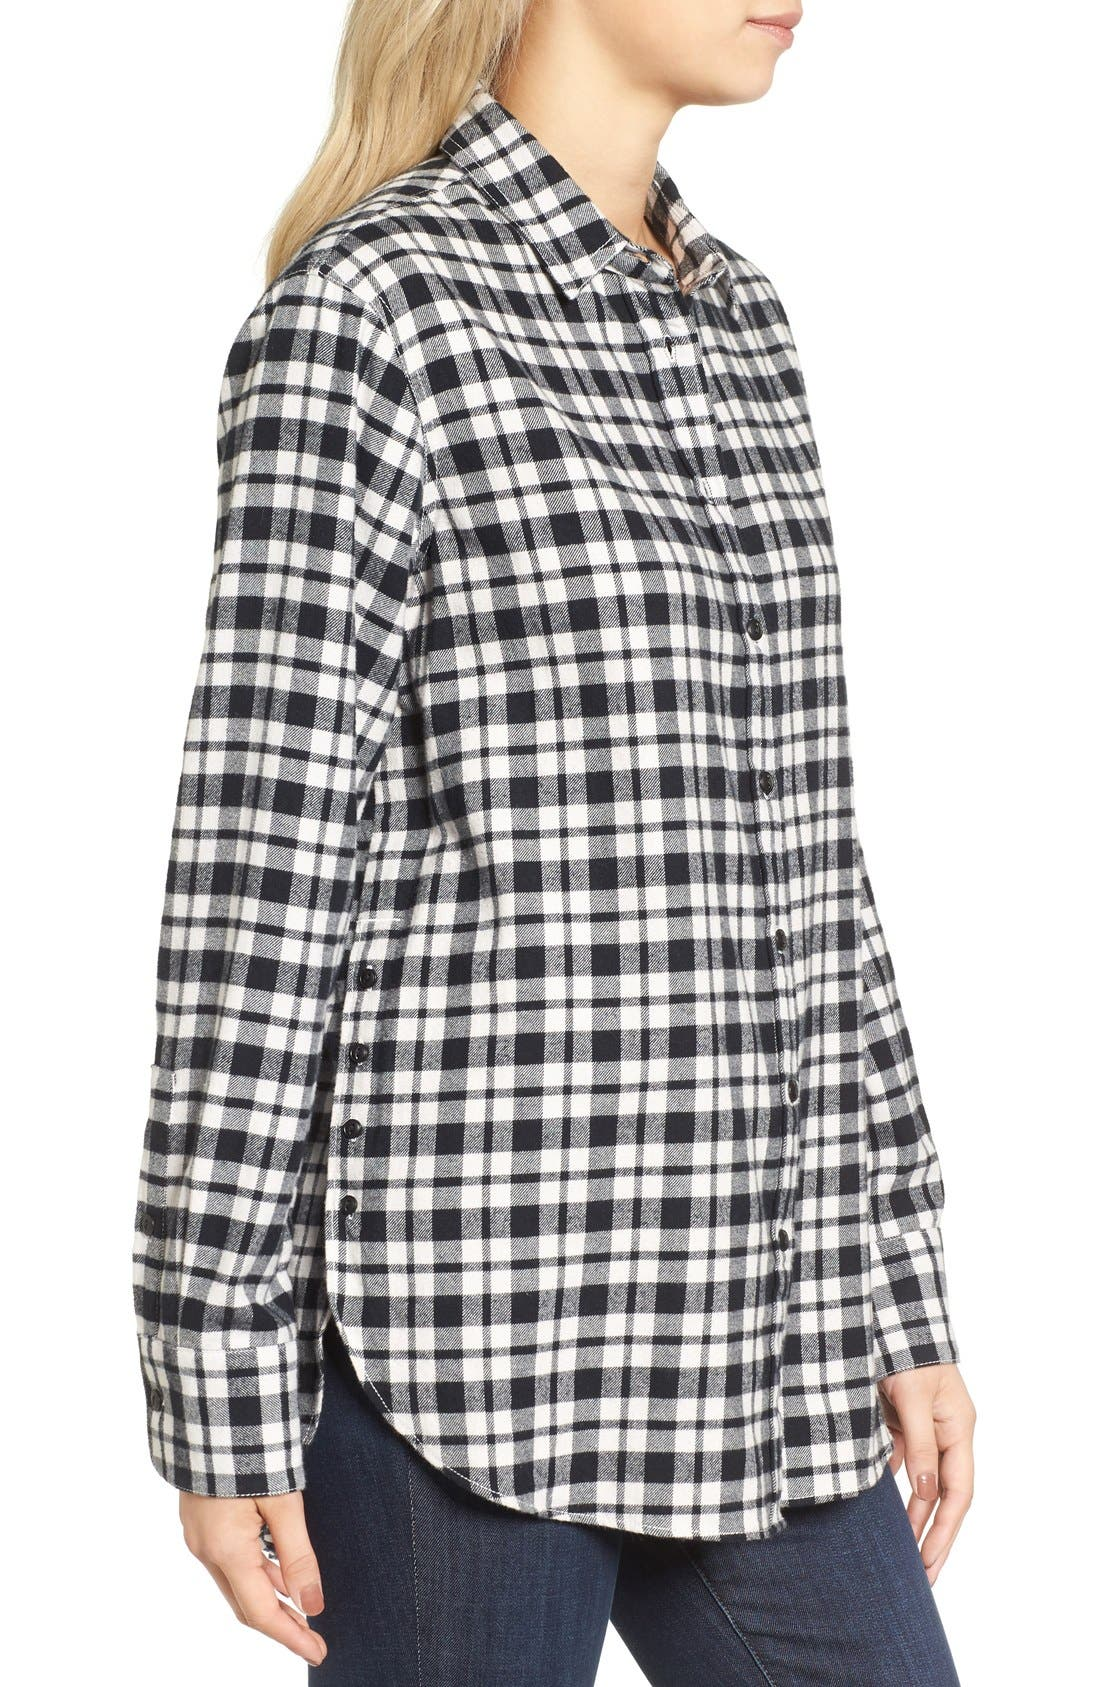 MADEWELL, Oversize Flannel Shirt, Alternate thumbnail 8, color, 002